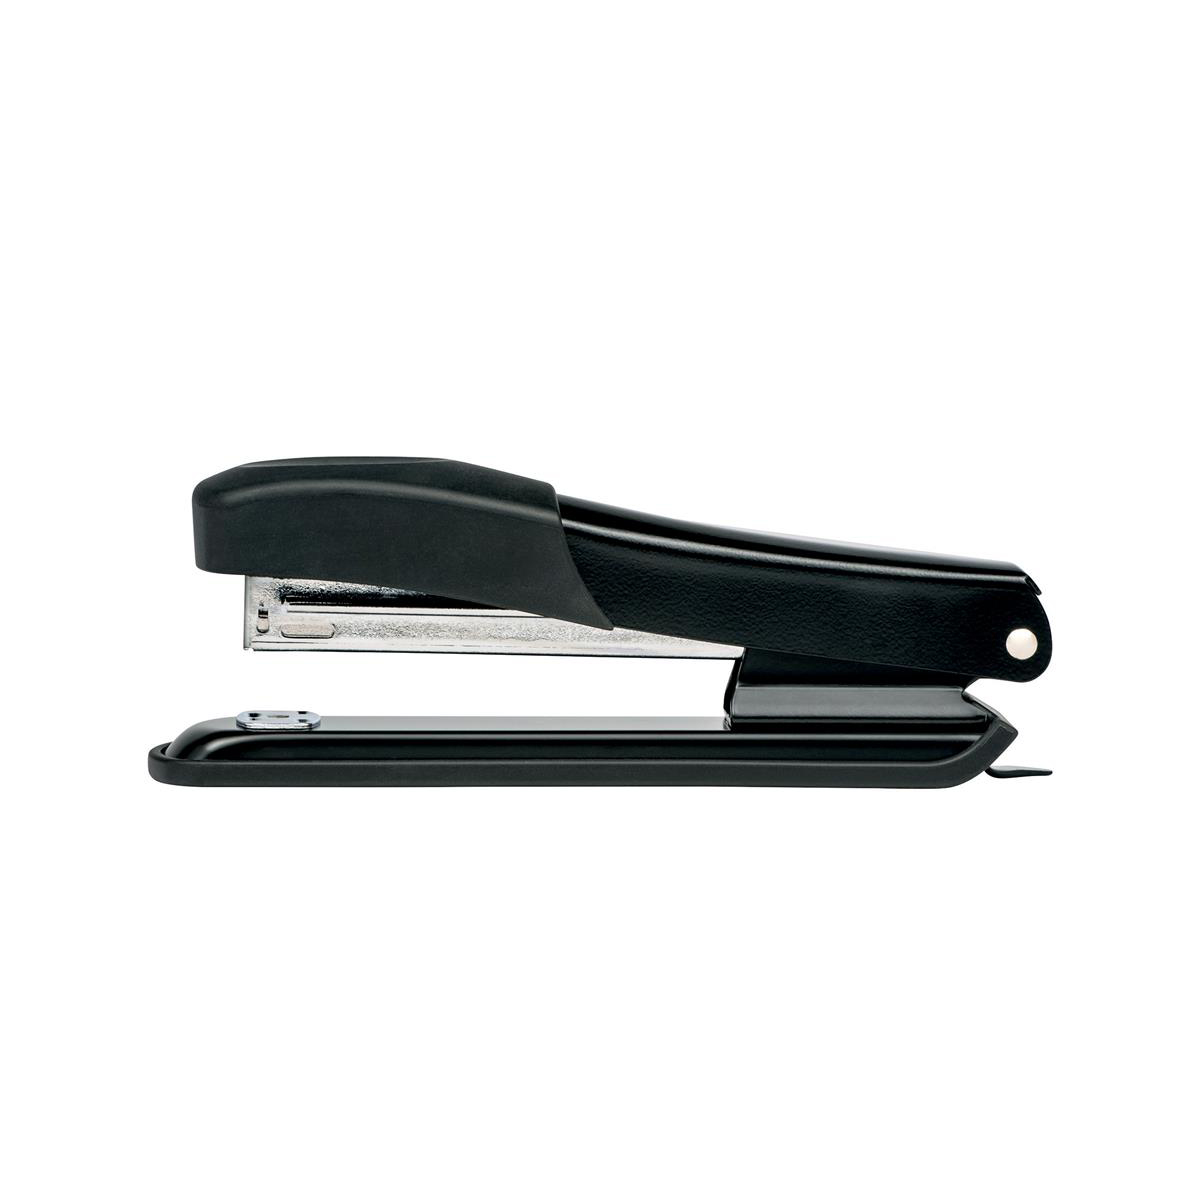 5 Star Office Metal Full Strip Stapler 20 Sheet Capacity Takes 26/6 Staples Black